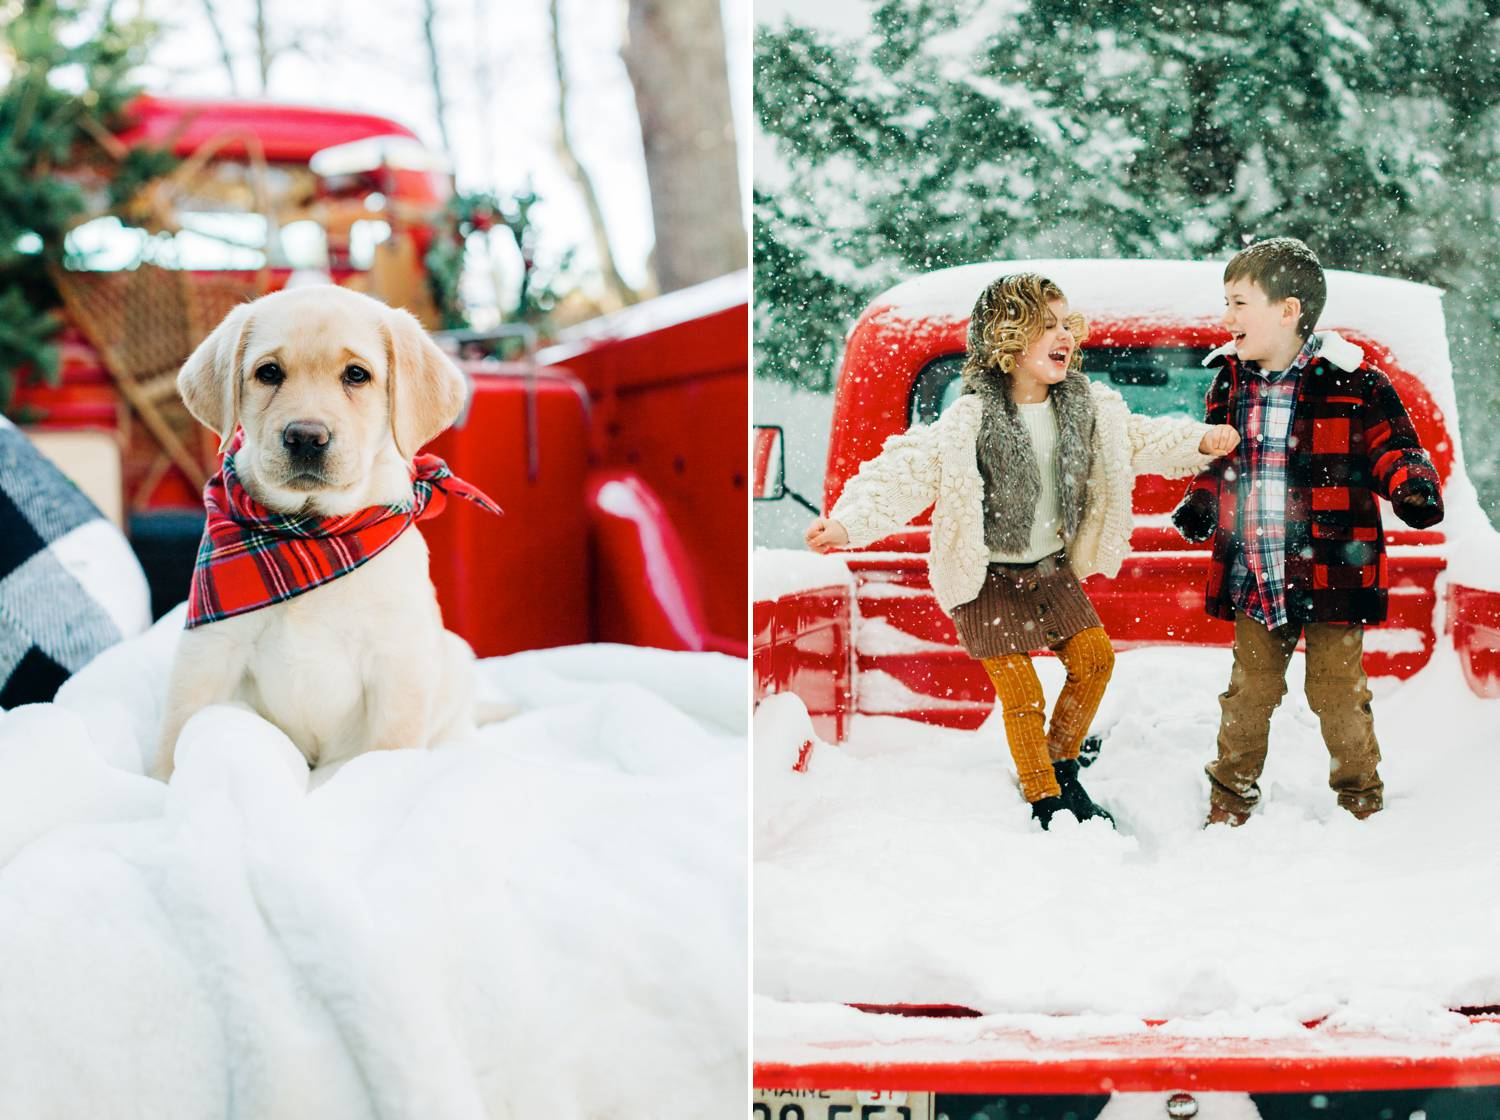 In two side-by-side photographs by Maine Tinker Photography, a red vintage pickup truck is parked in the snow. In one photo, a labrador puppy wears a red plaid bandana and sits calmly on a white blanket. In the other photo, two young kids jump about in the bed of the truck, which has filled with falling snow. Christmas Mini Session: Ideas Families will ADORE!